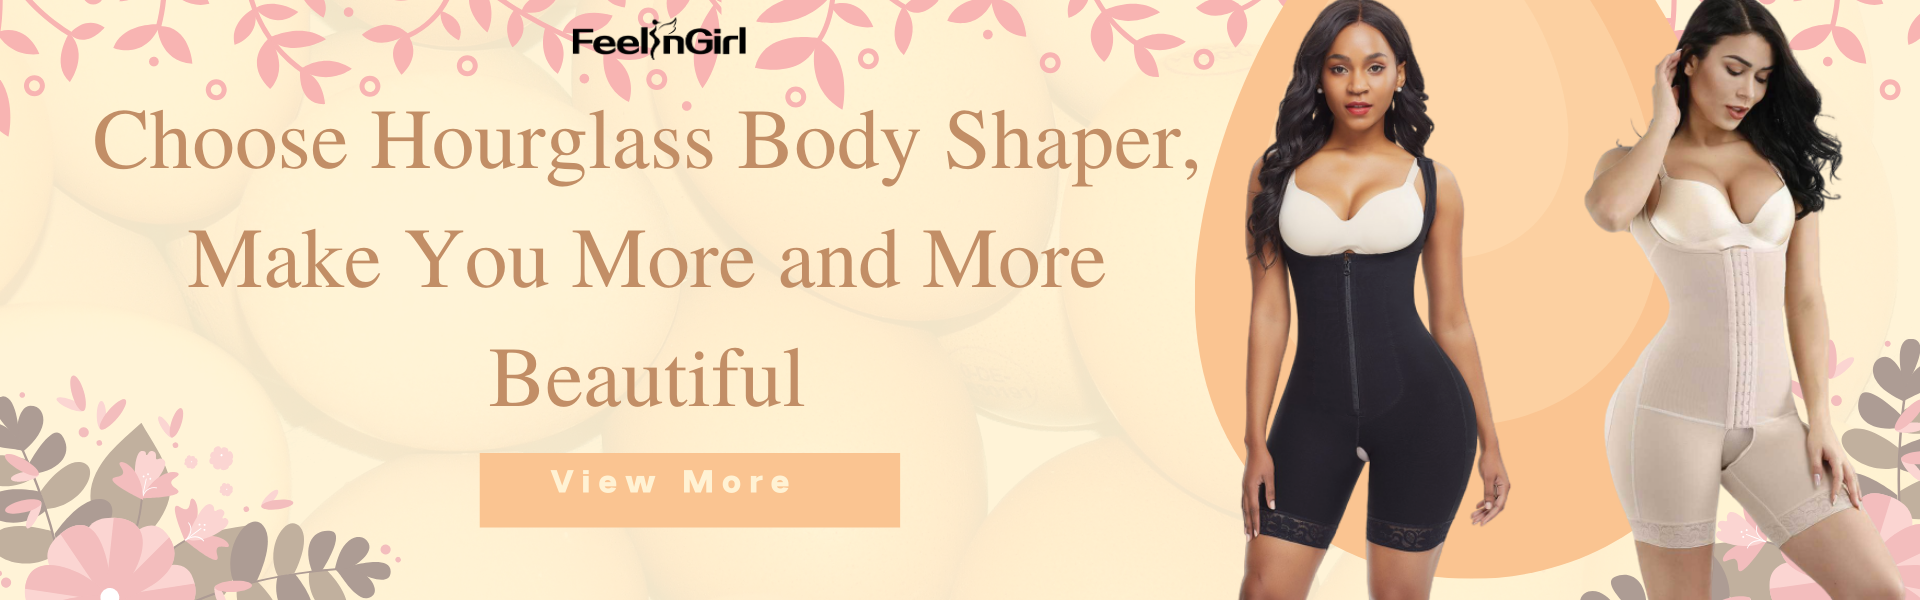 Choose Hourglass Body Shaper, Make You More and More Beautiful